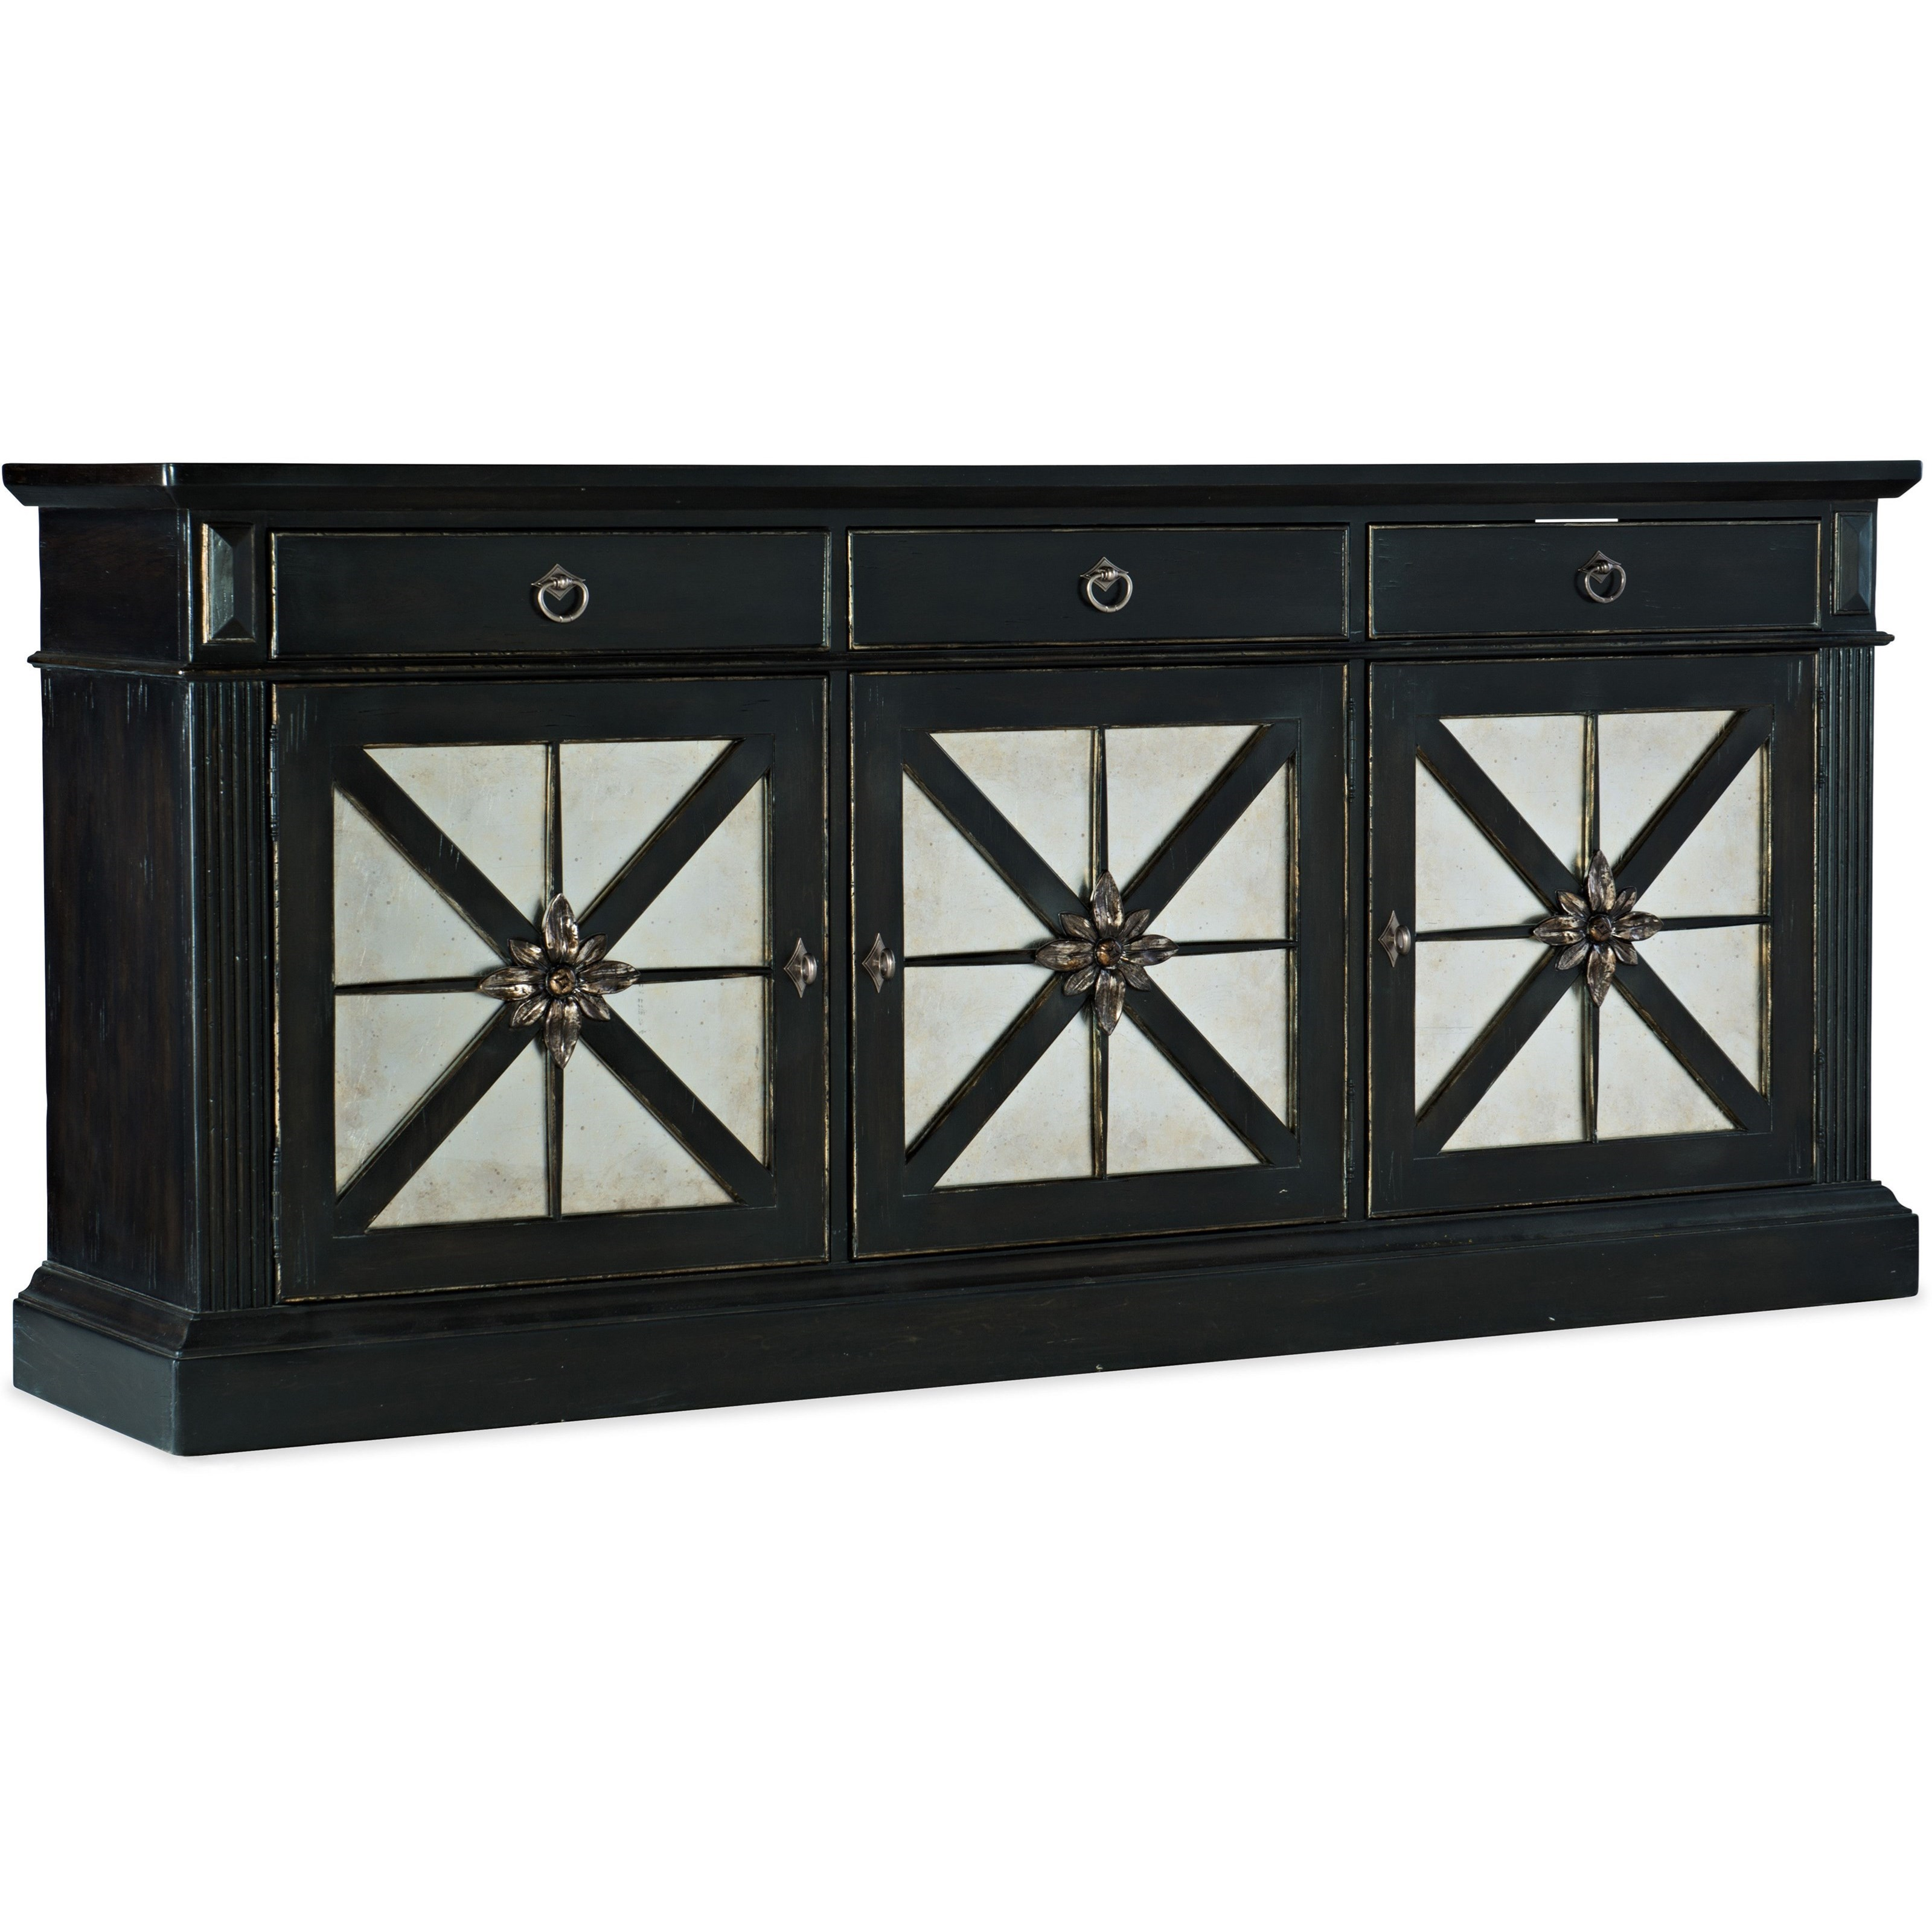 Premier Entertainment Console Noir